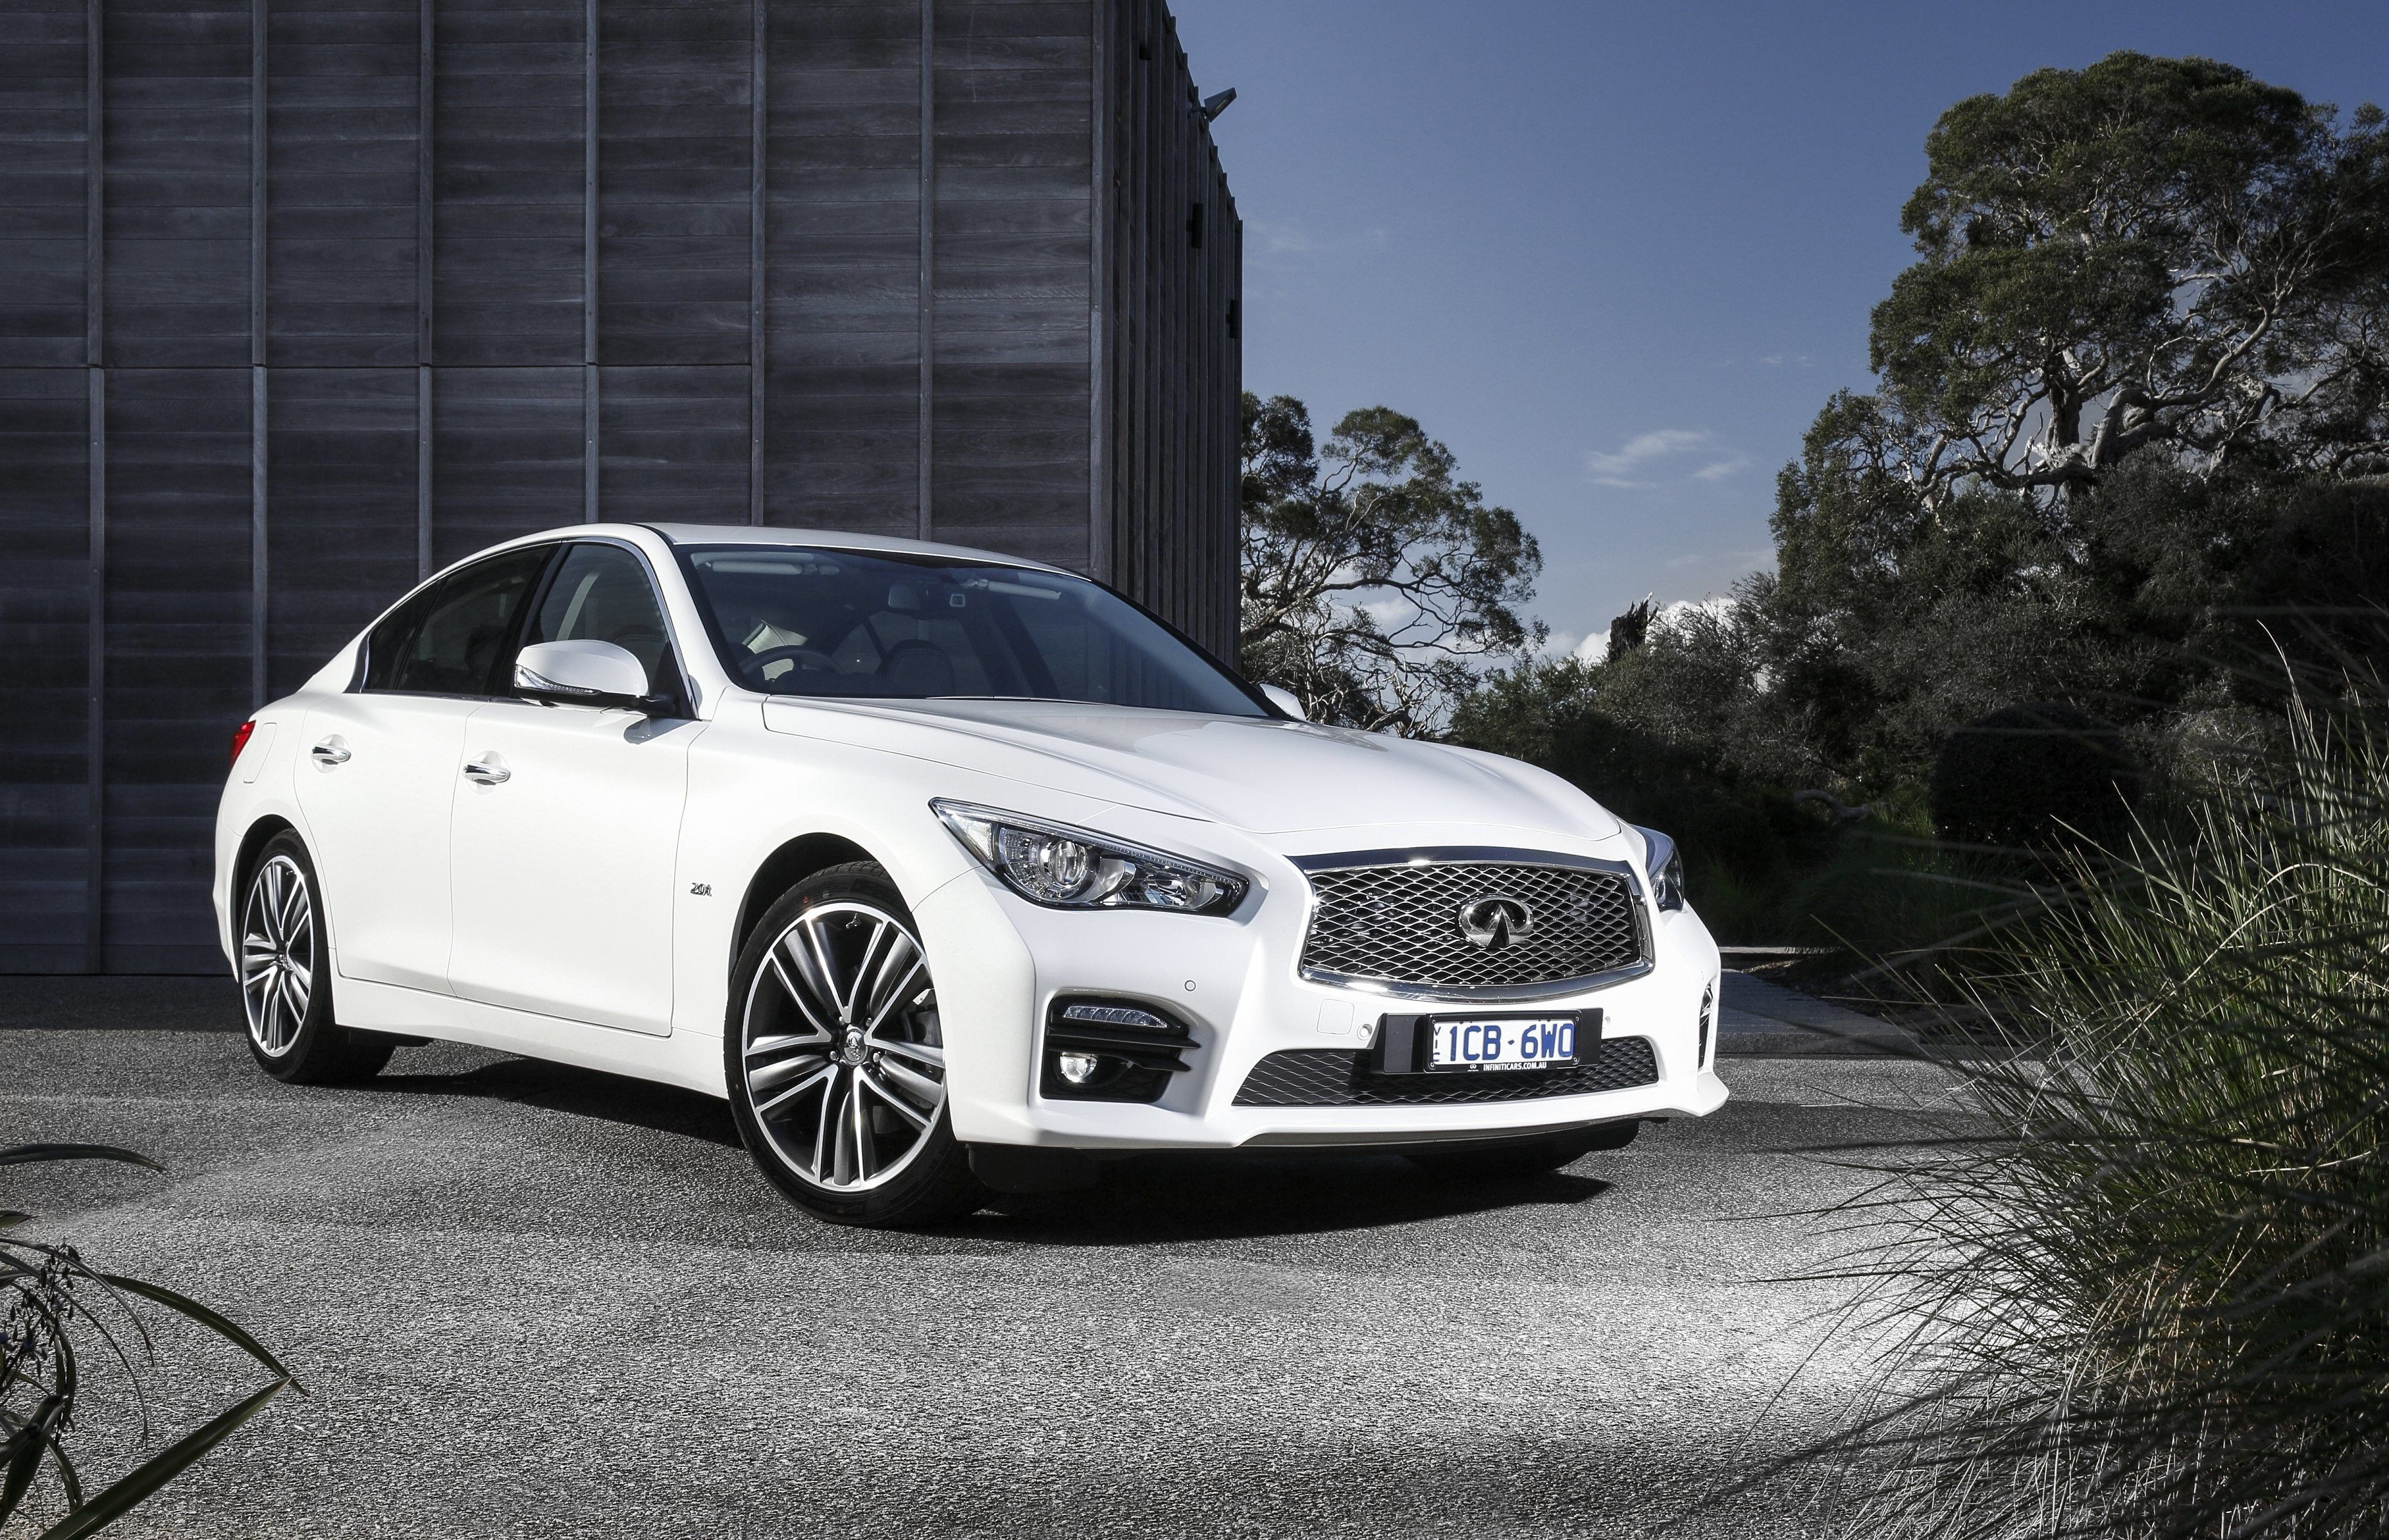 2019 infiniti q50 it has actually been couple of years considering that infiniti launches its latest auto the 2019 infiniti q50 is unique automobi